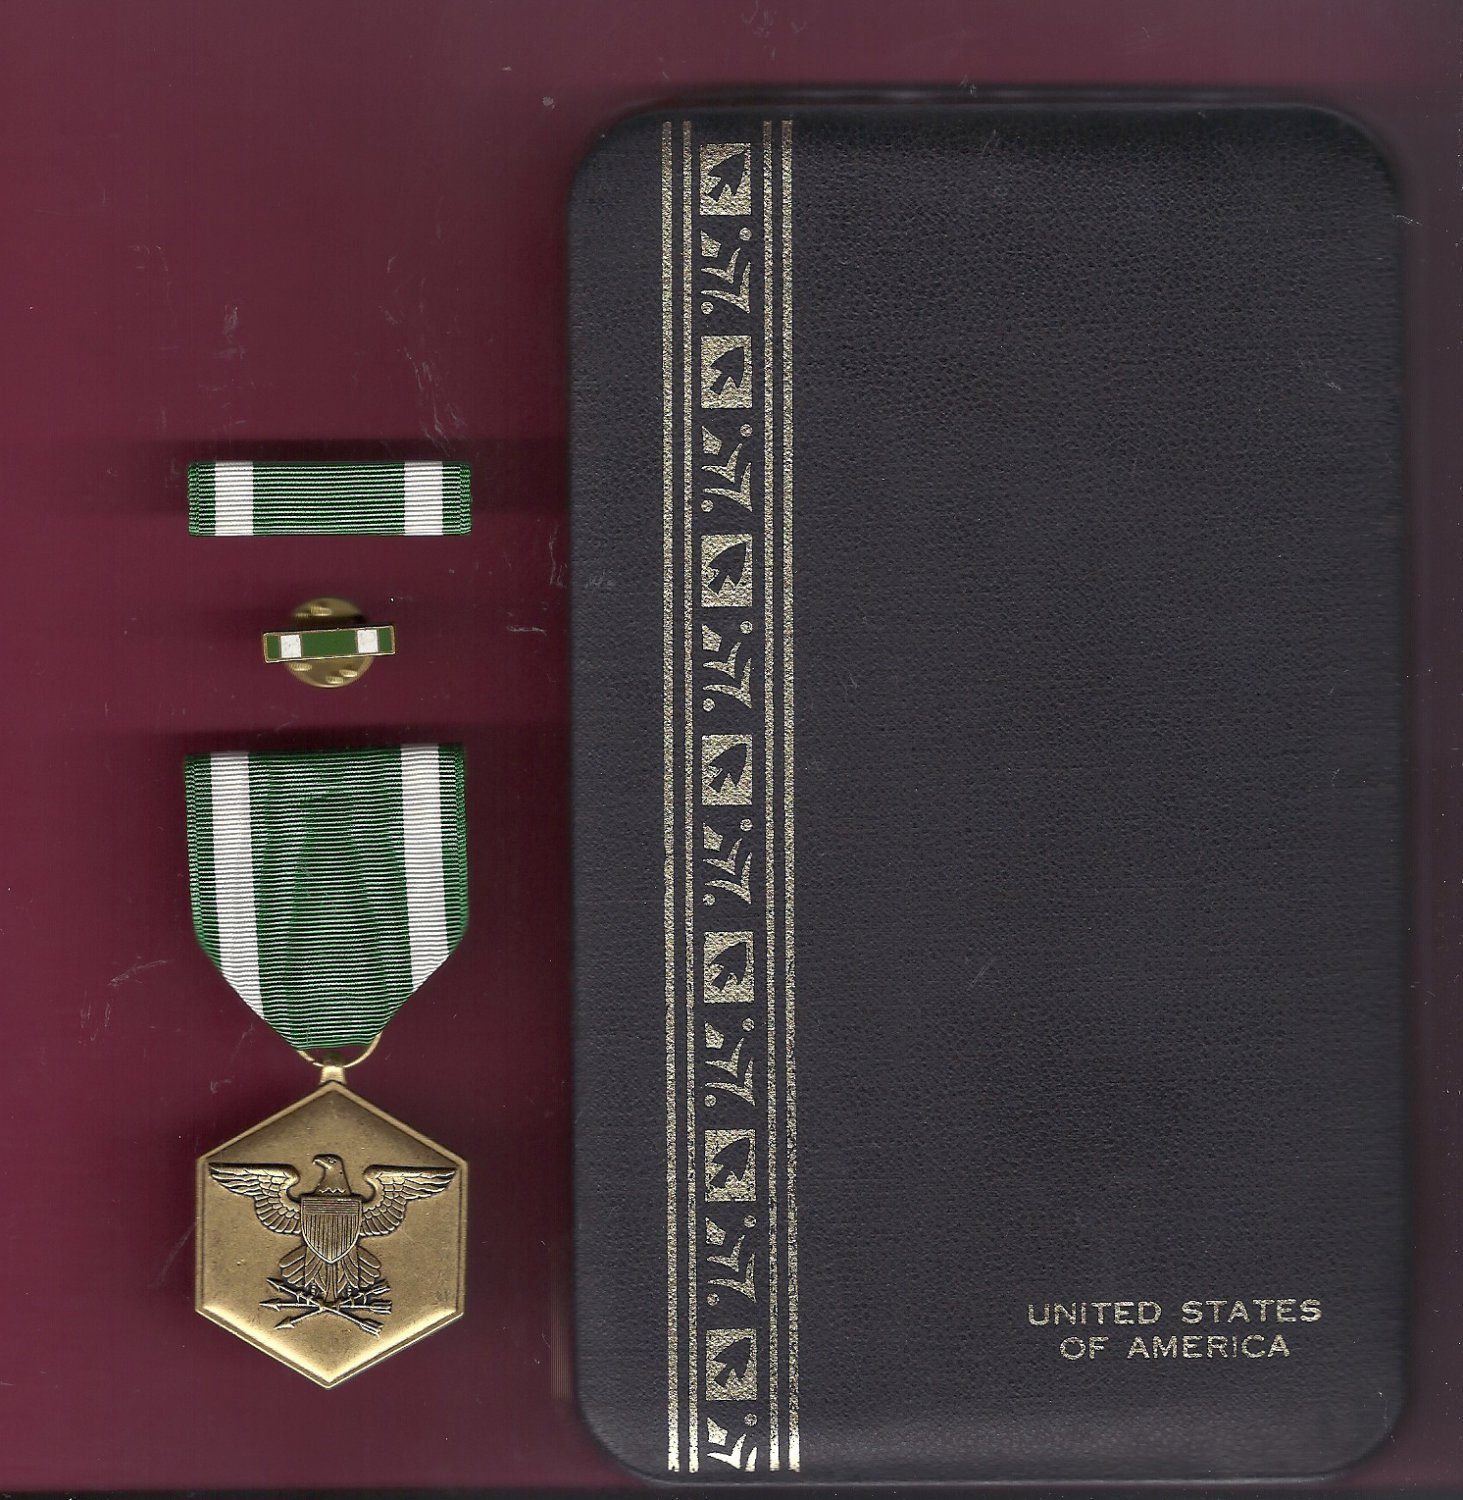 Navy Commendation medal in case with ribbon bar and lapel pin